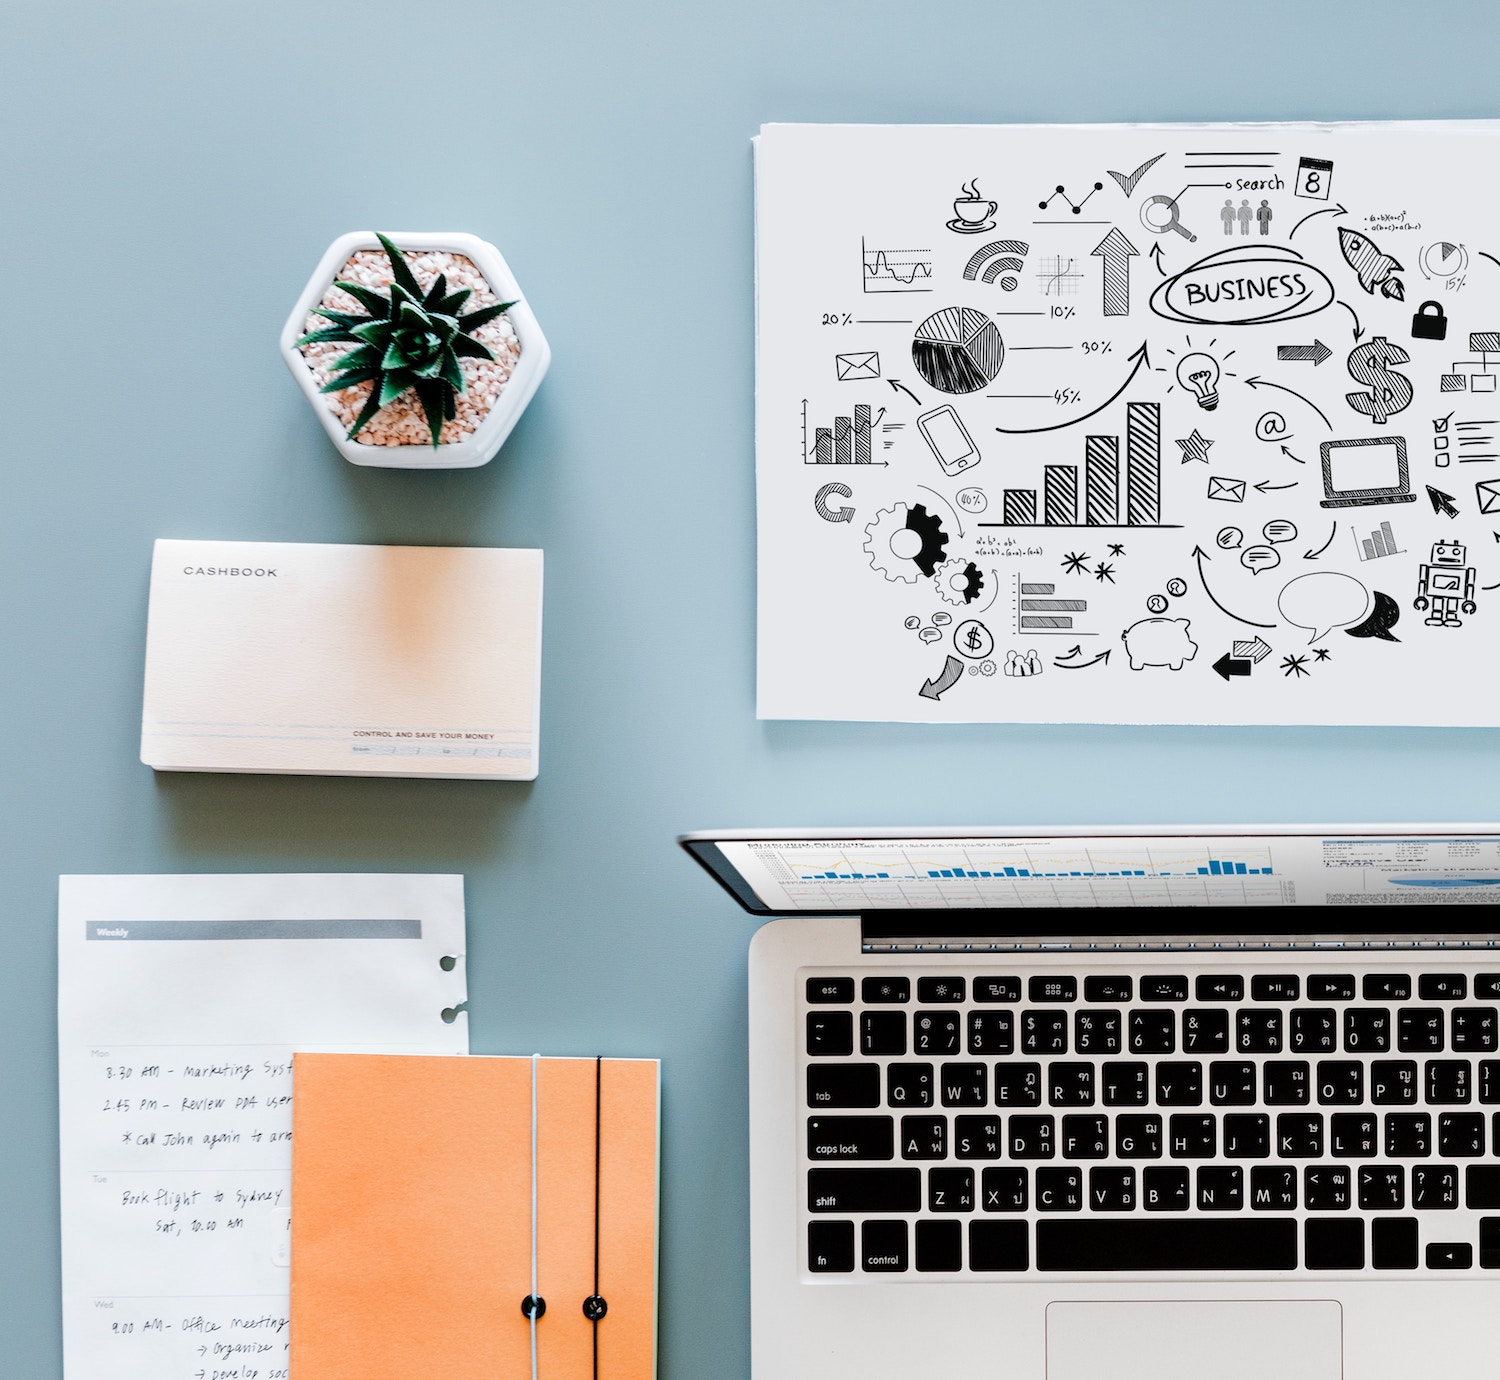 Tools and workplace to work with well